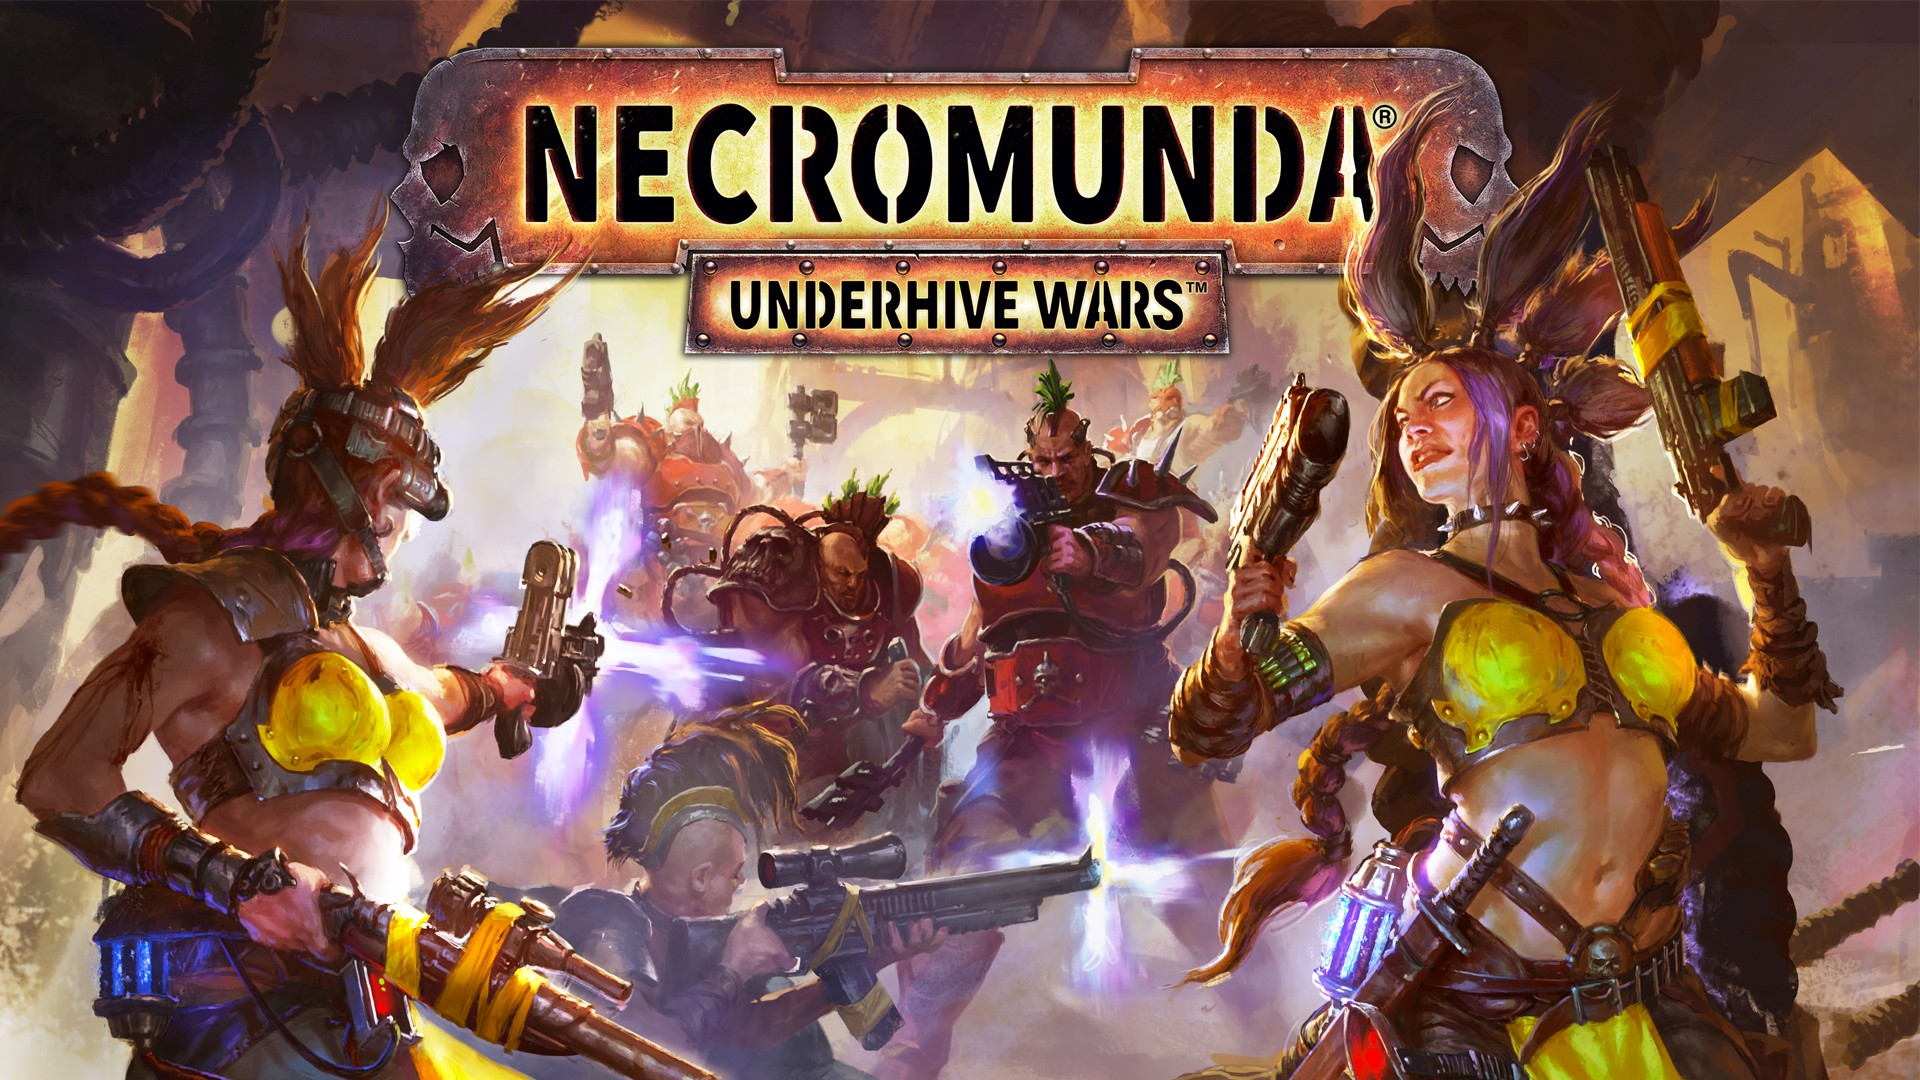 Video For 8 Tips You Should Know Before Jumping into Necromunda: Underhive Wars